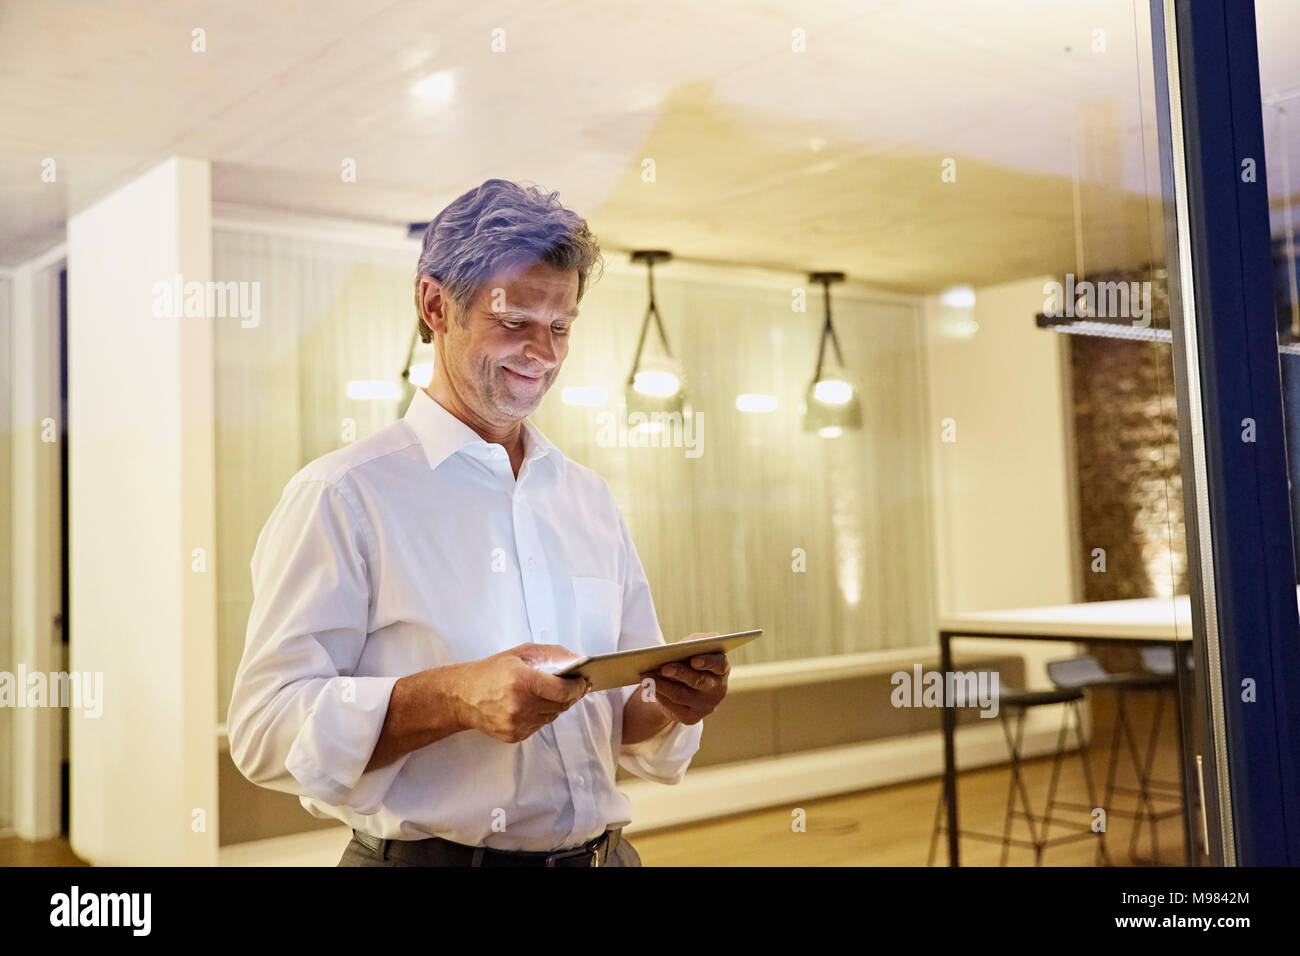 Man using tablet in modern building at night - Stock Image